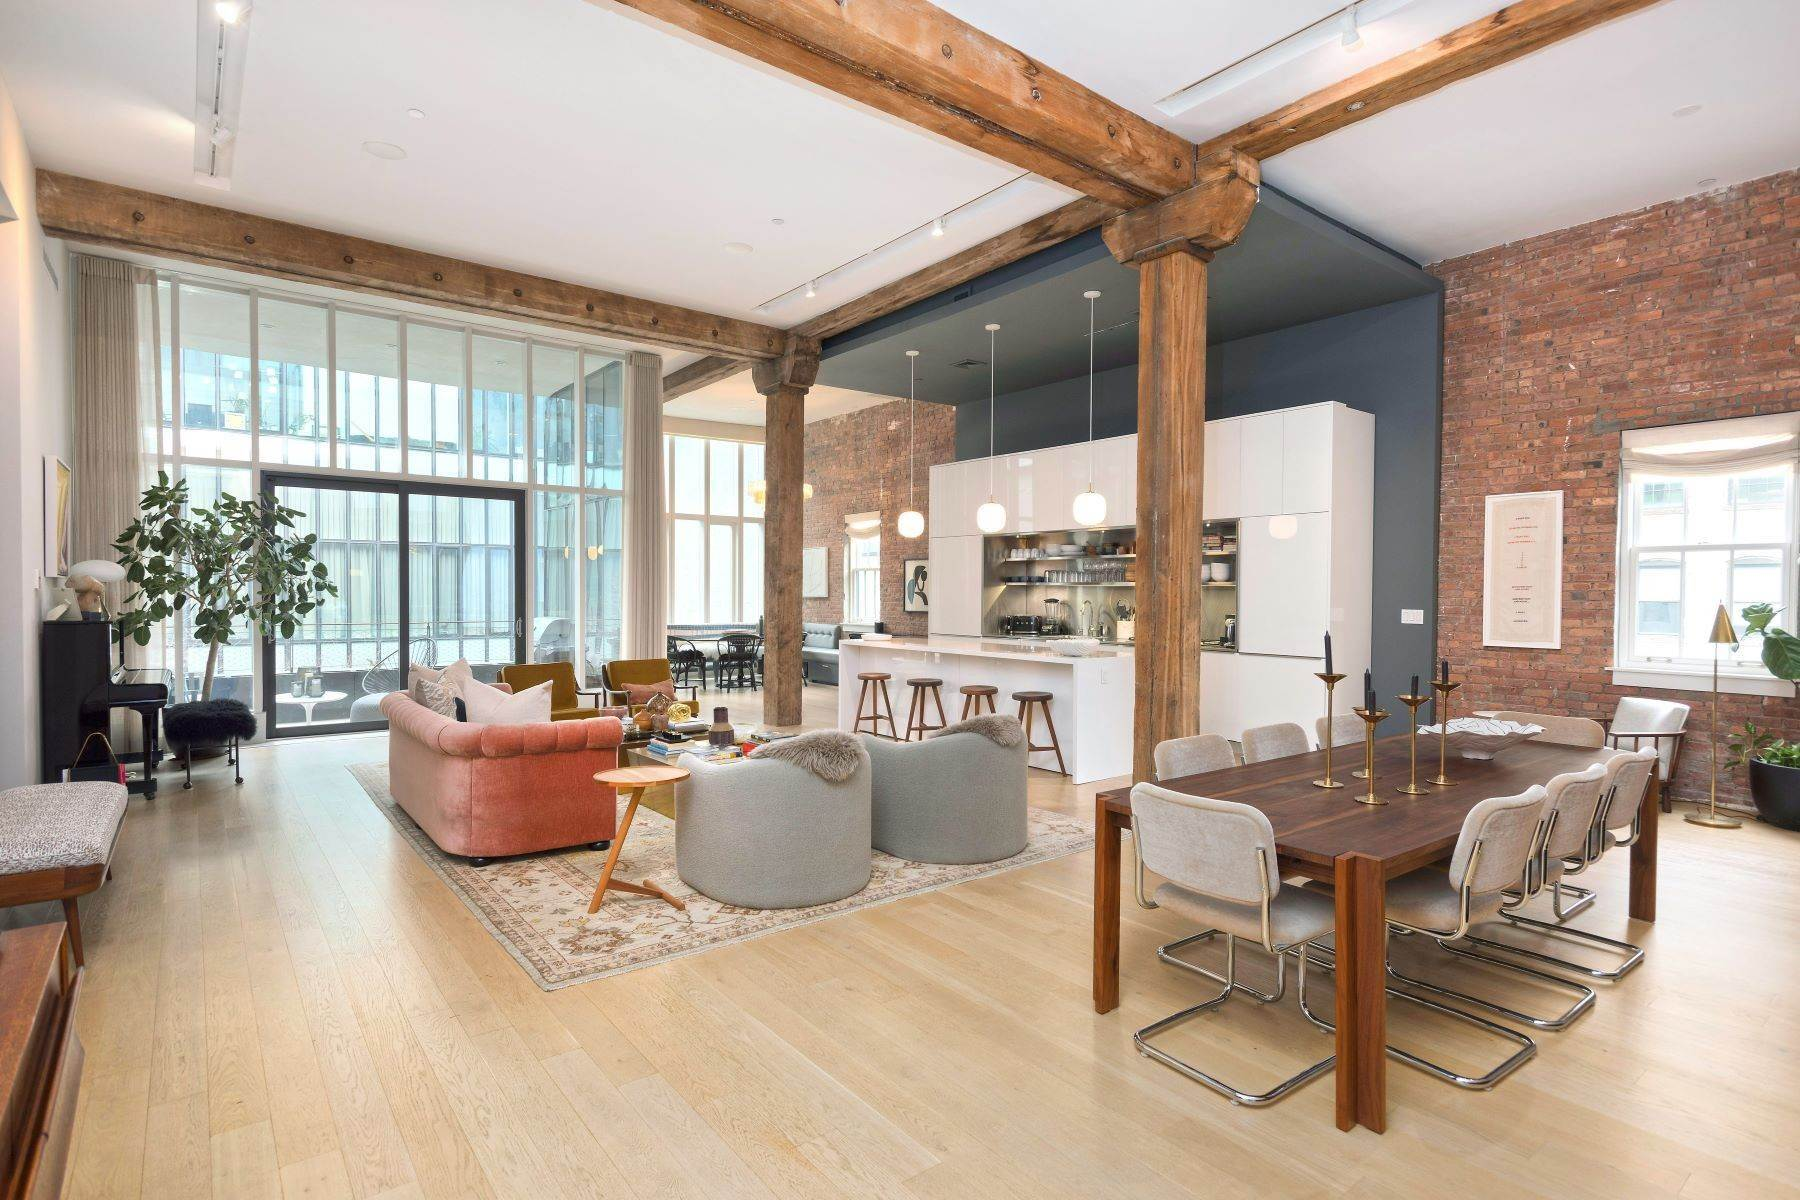 Unique Dumbo Loft Masterpiece 185 Plymouth Street, Apt 3S Brooklyn, 뉴욕 11201 미국에 Condominiums